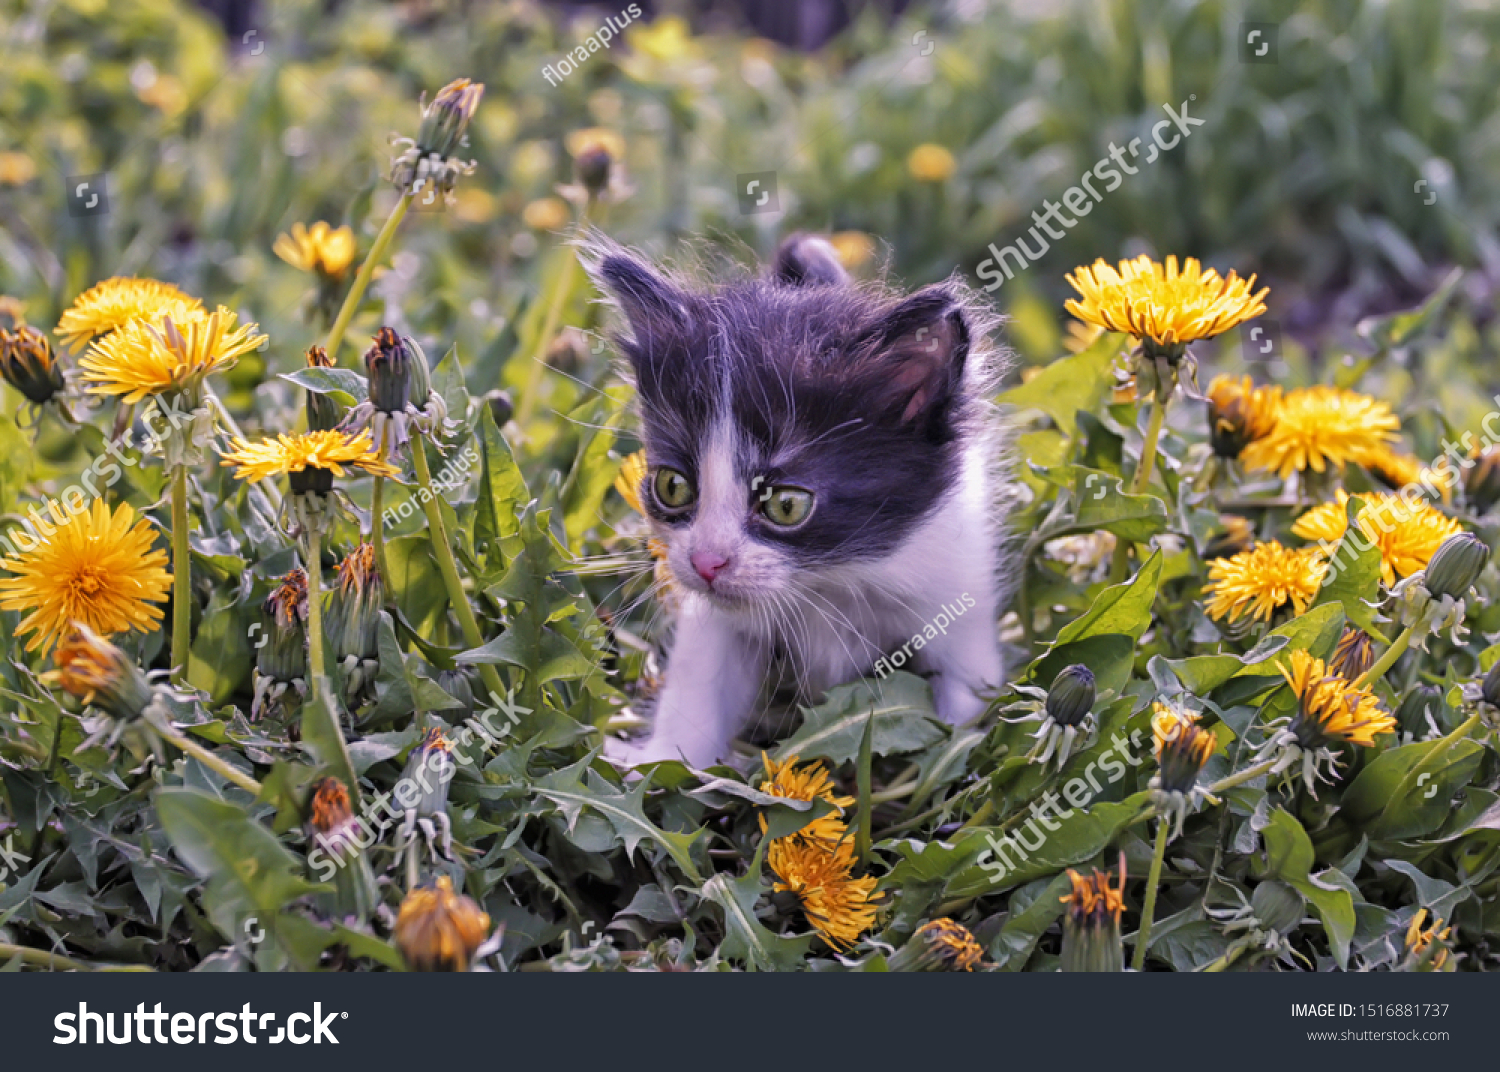 stock-photo-a-cute-little-kitten-in-yell